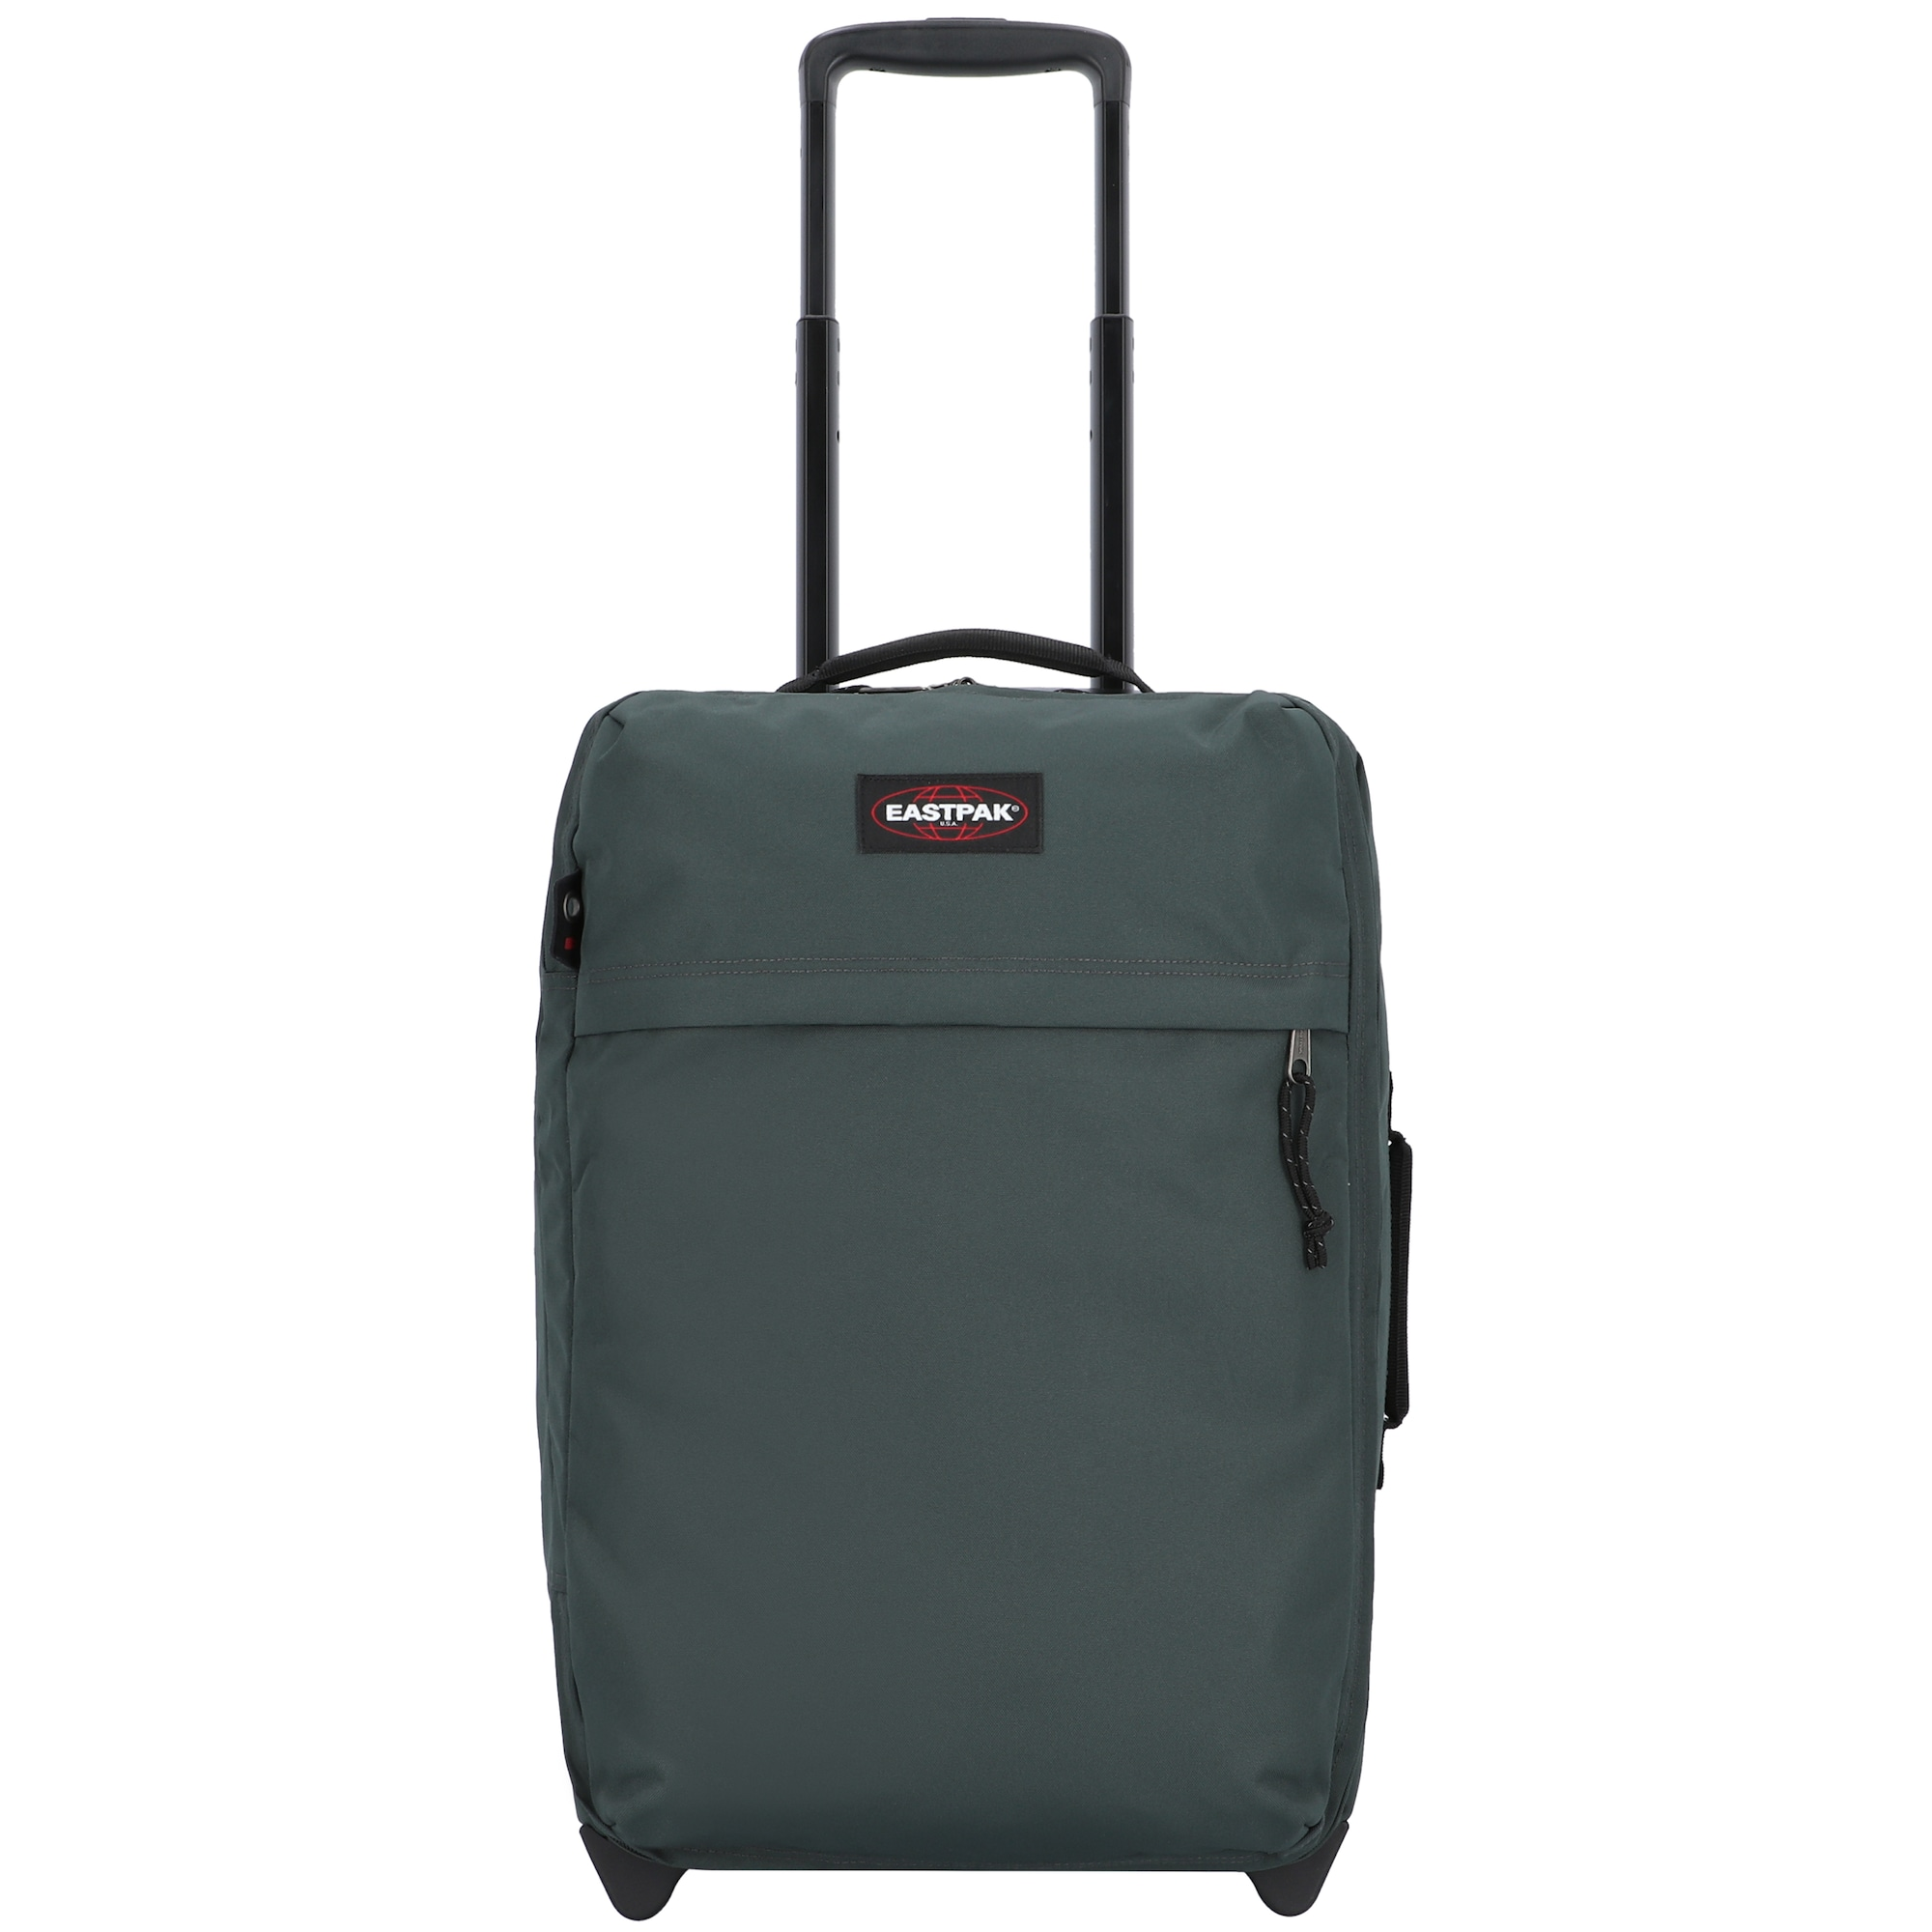 Trolley 'Traf'ik Light S' | Taschen > Koffer & Trolleys > Trolleys | Grün | Eastpak